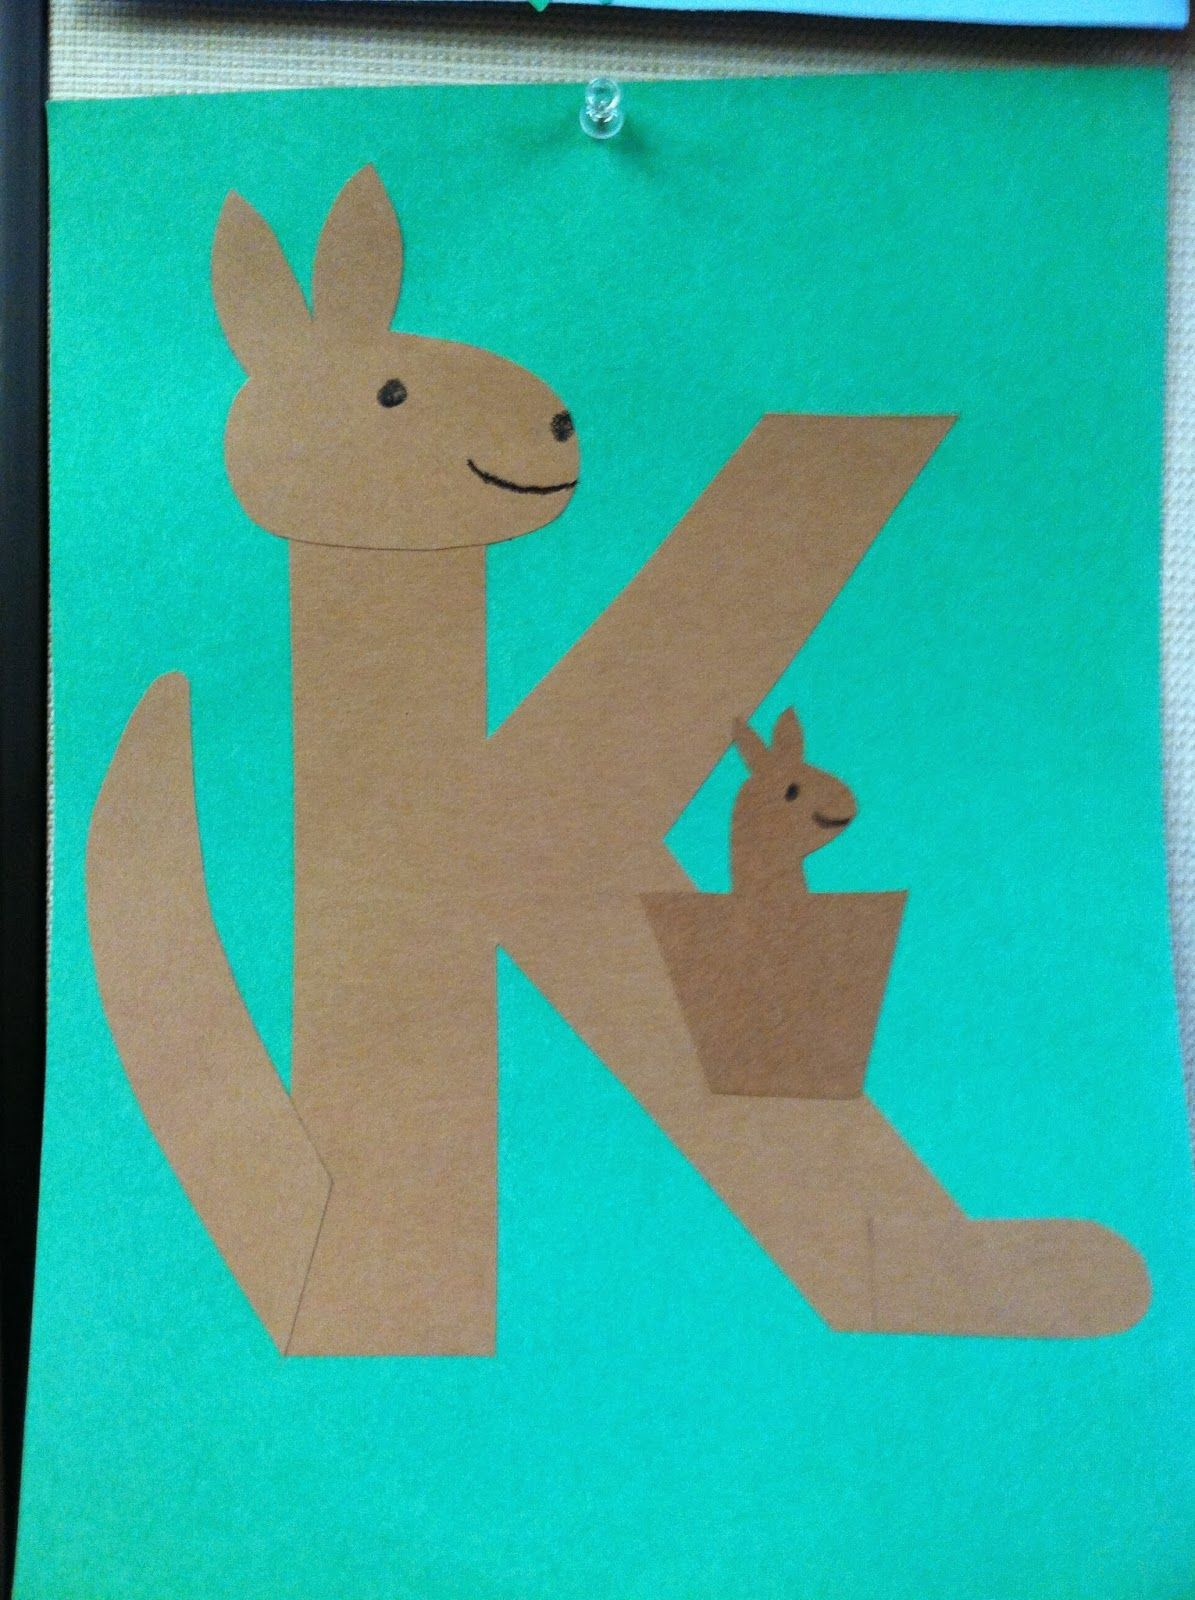 K is for Kangaroo storytime   books, songs, rhymes, and craft